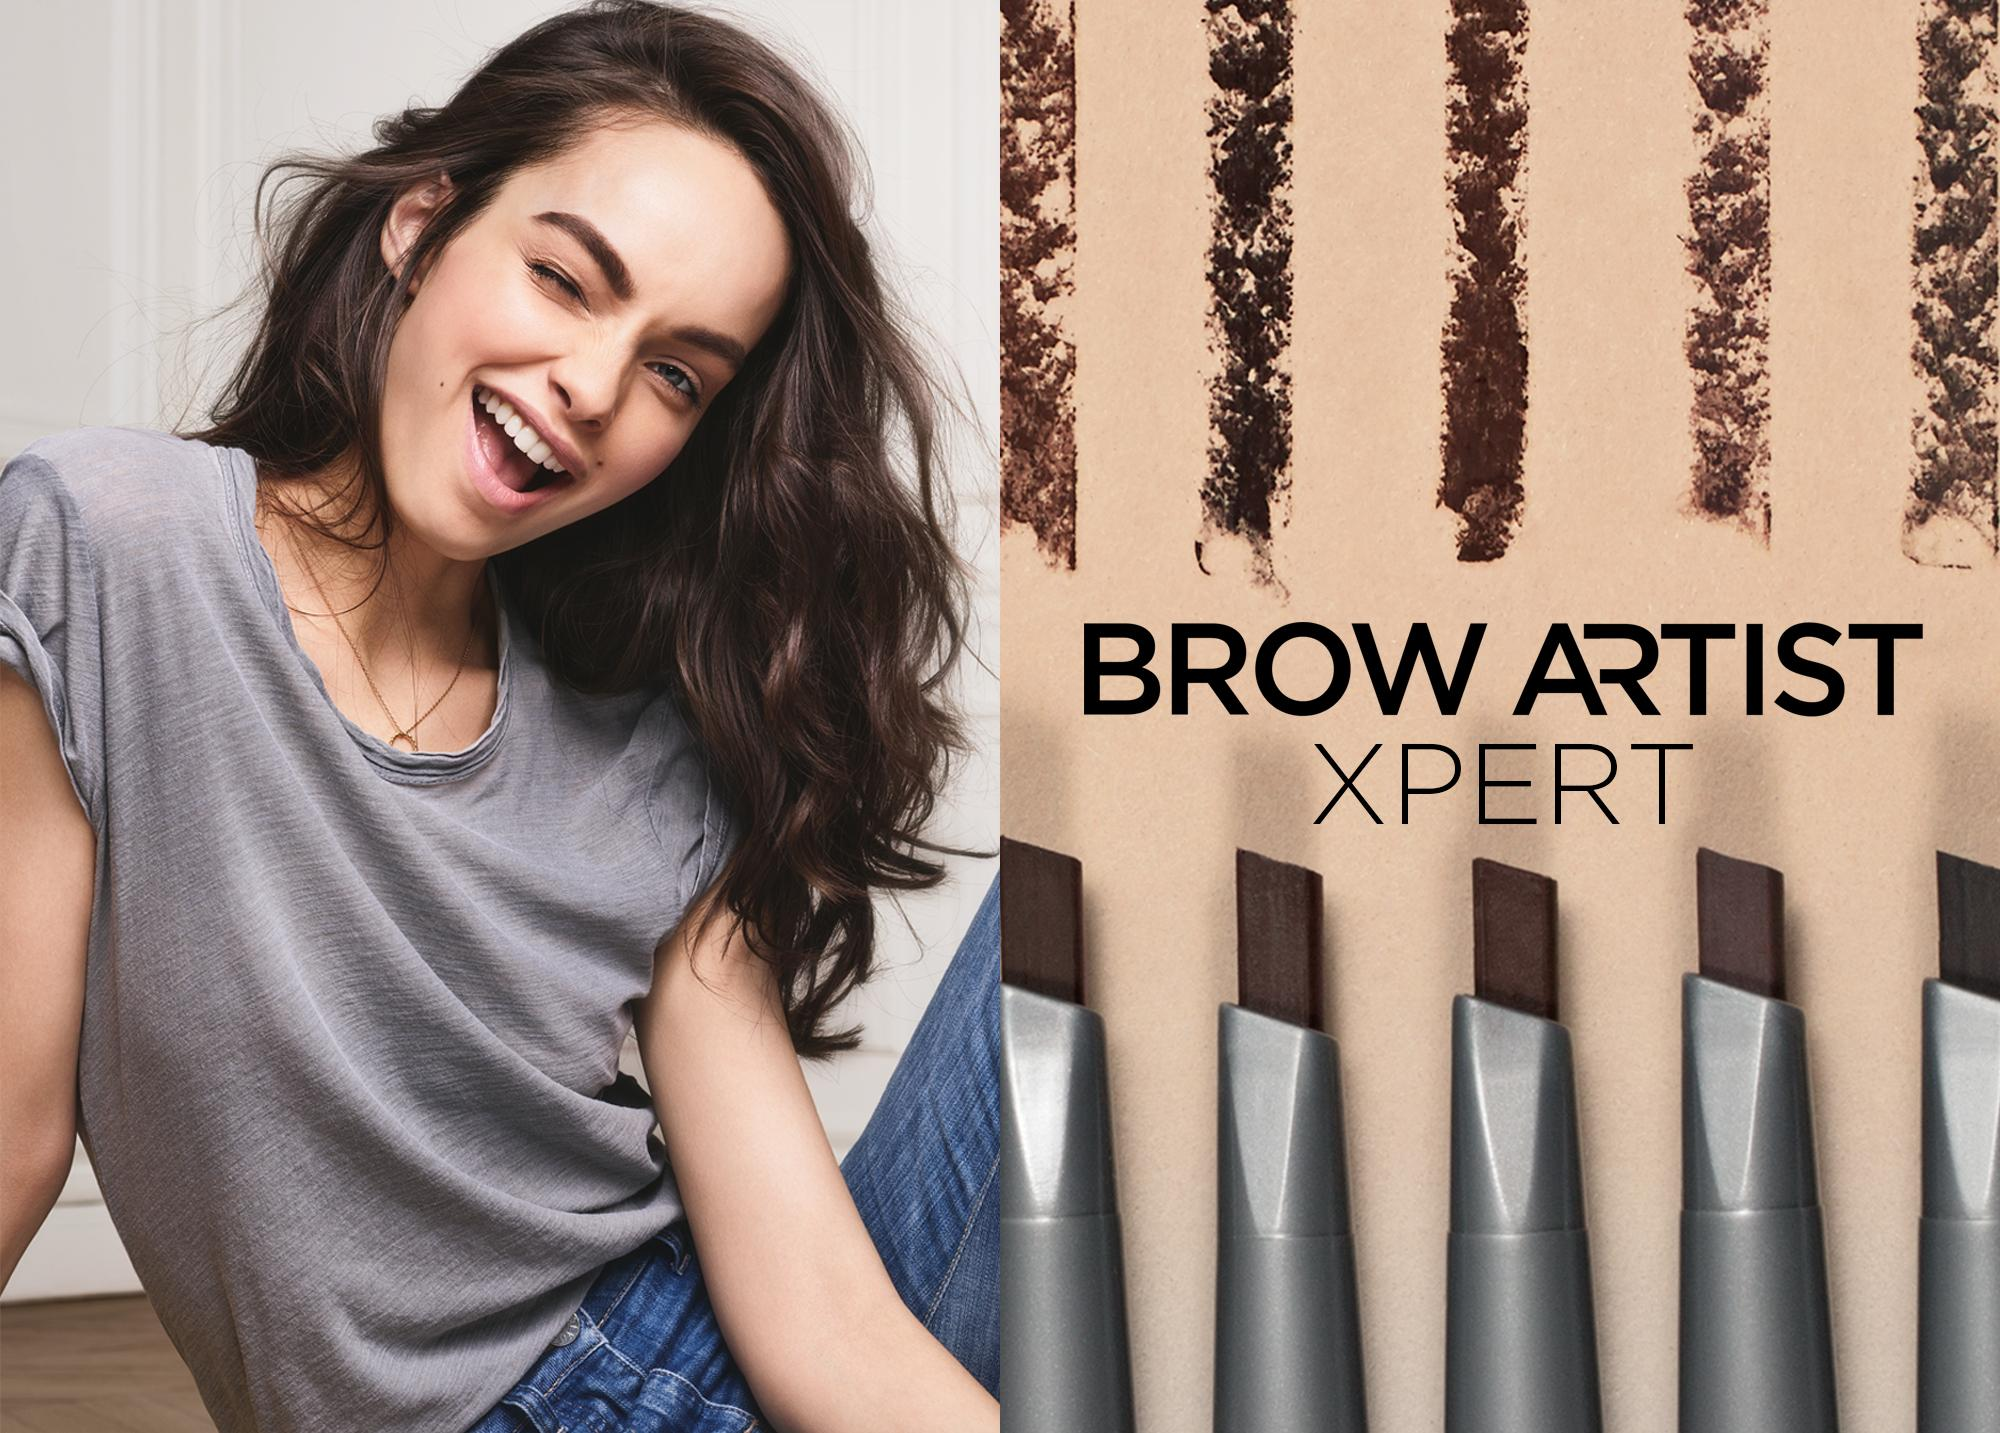 Brow Artist Xpert 2 In 1 Brow Pencil 105 Brunette By L Oreal Paris Brow Artist